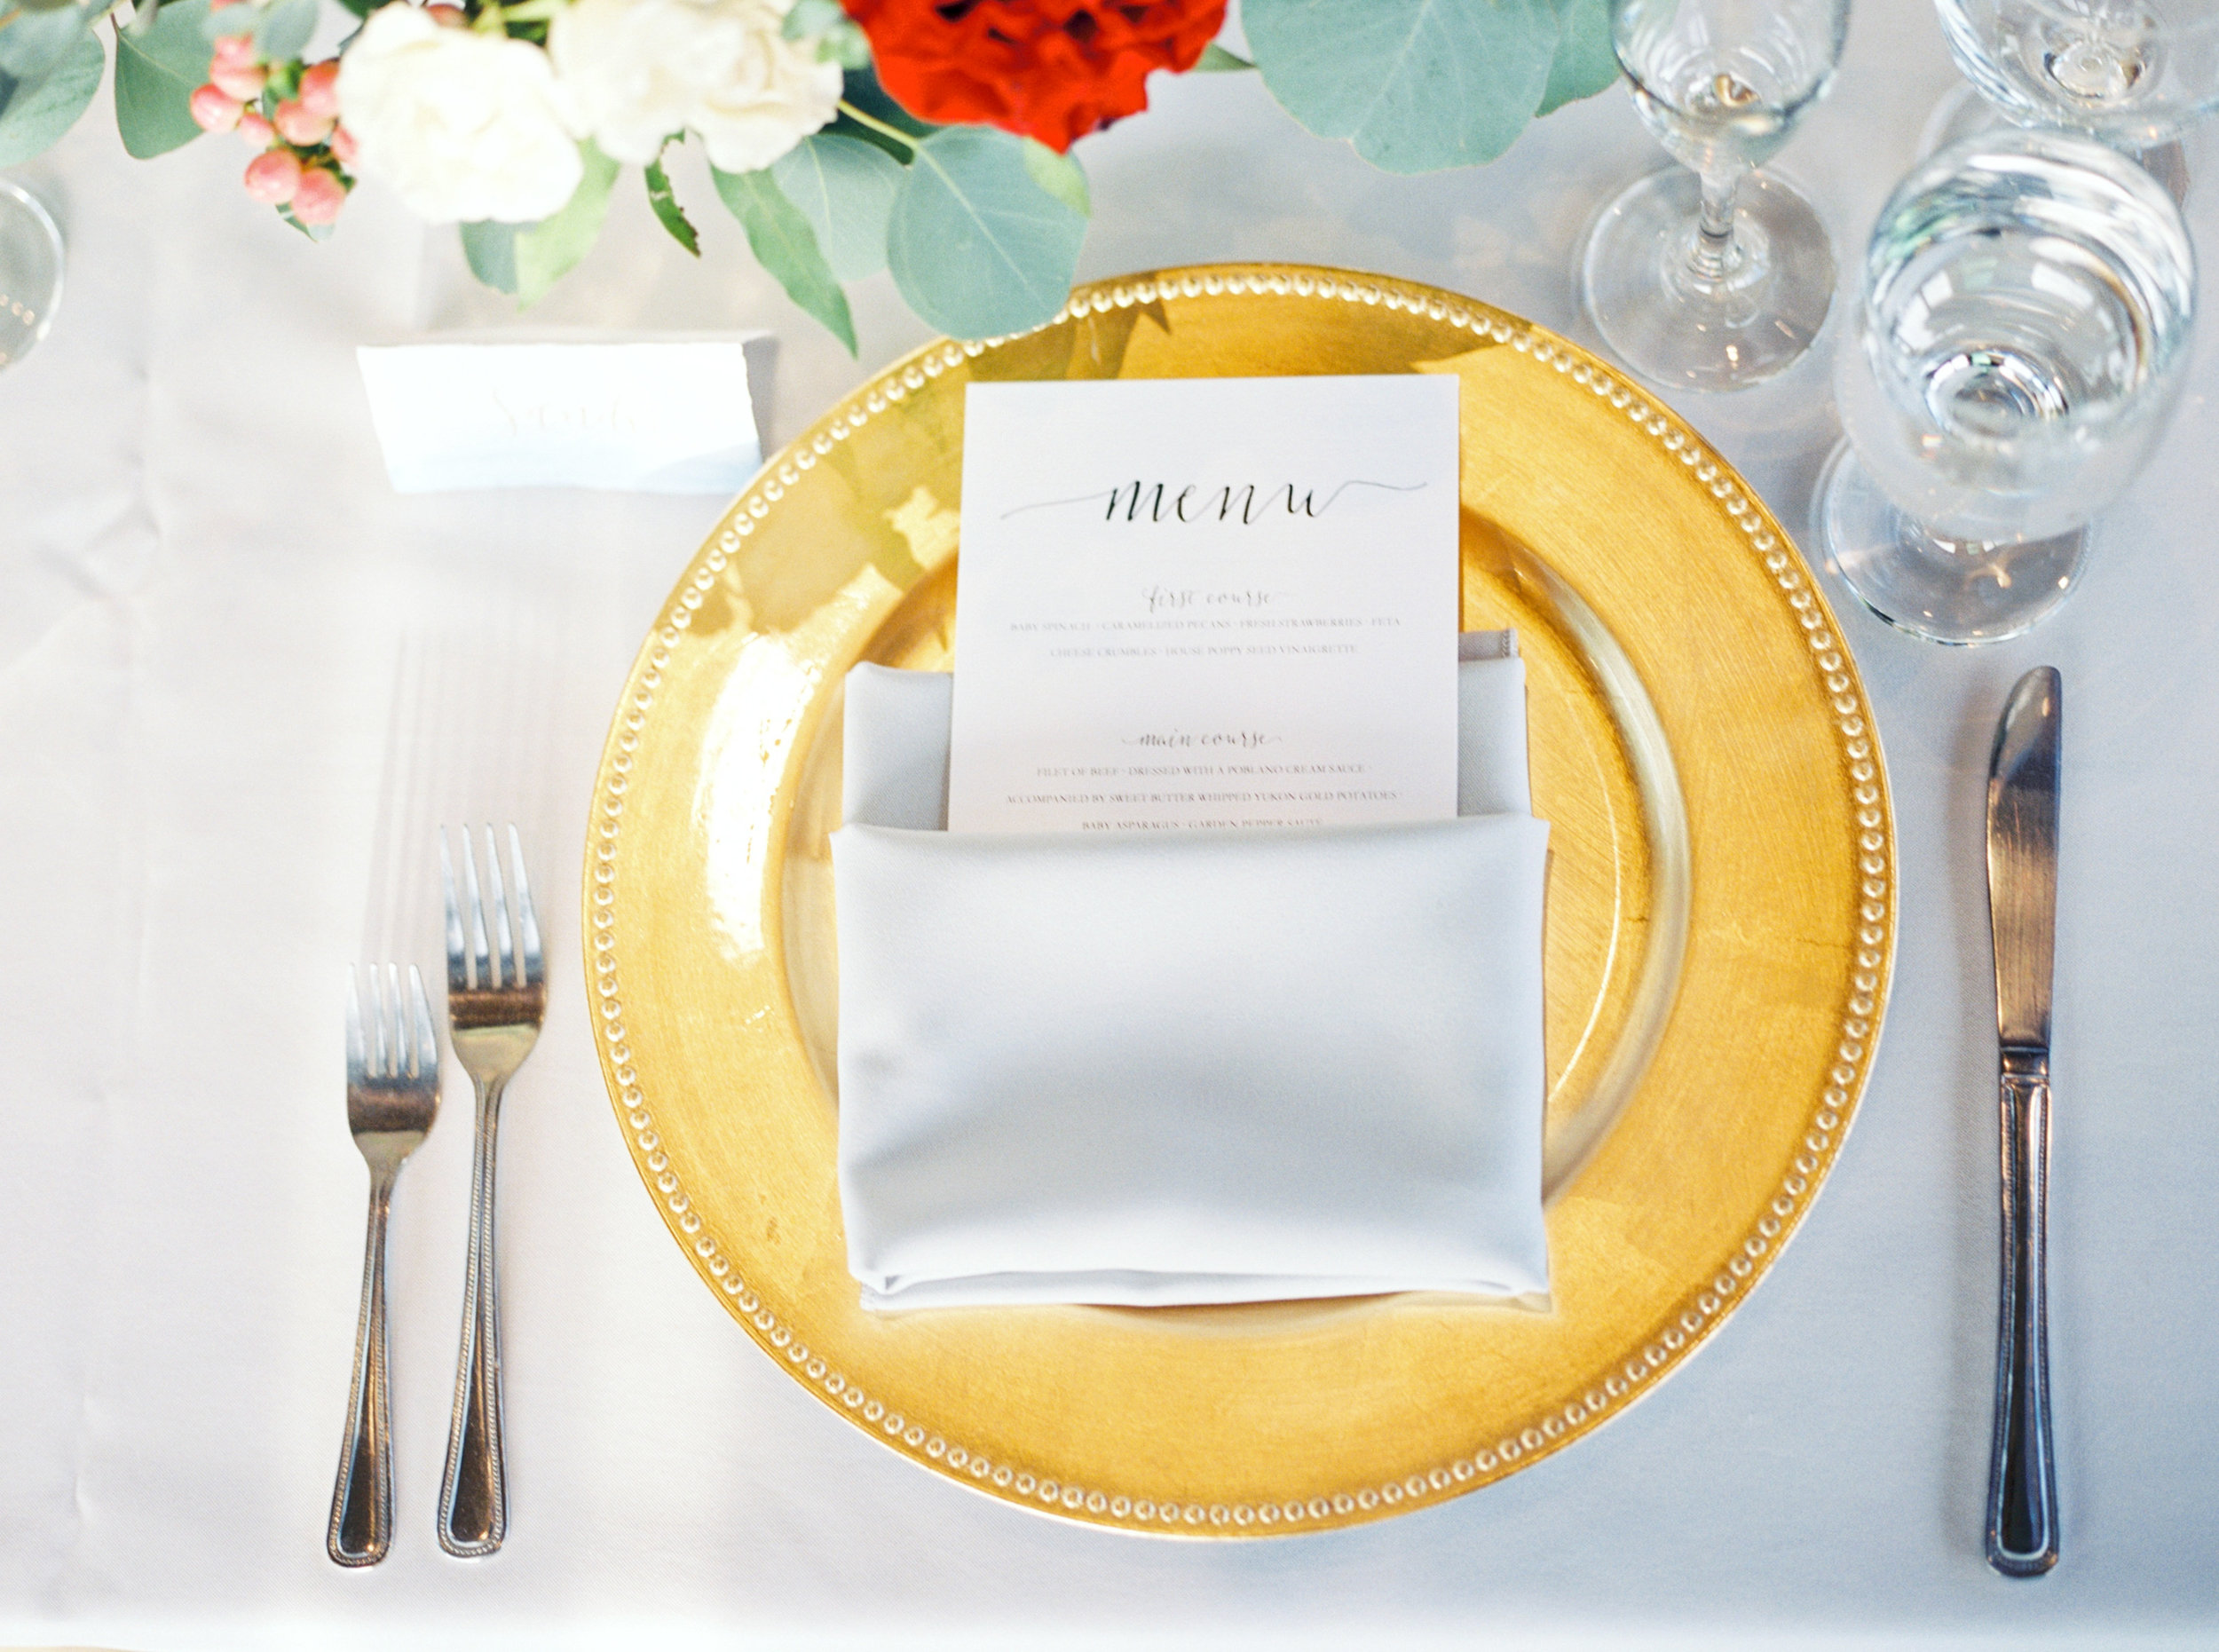 wedding place setting, gold charger, garden wedding flowers, red wedding flowers, blush wedding flowers, blush wedding flowers, wedding stationery